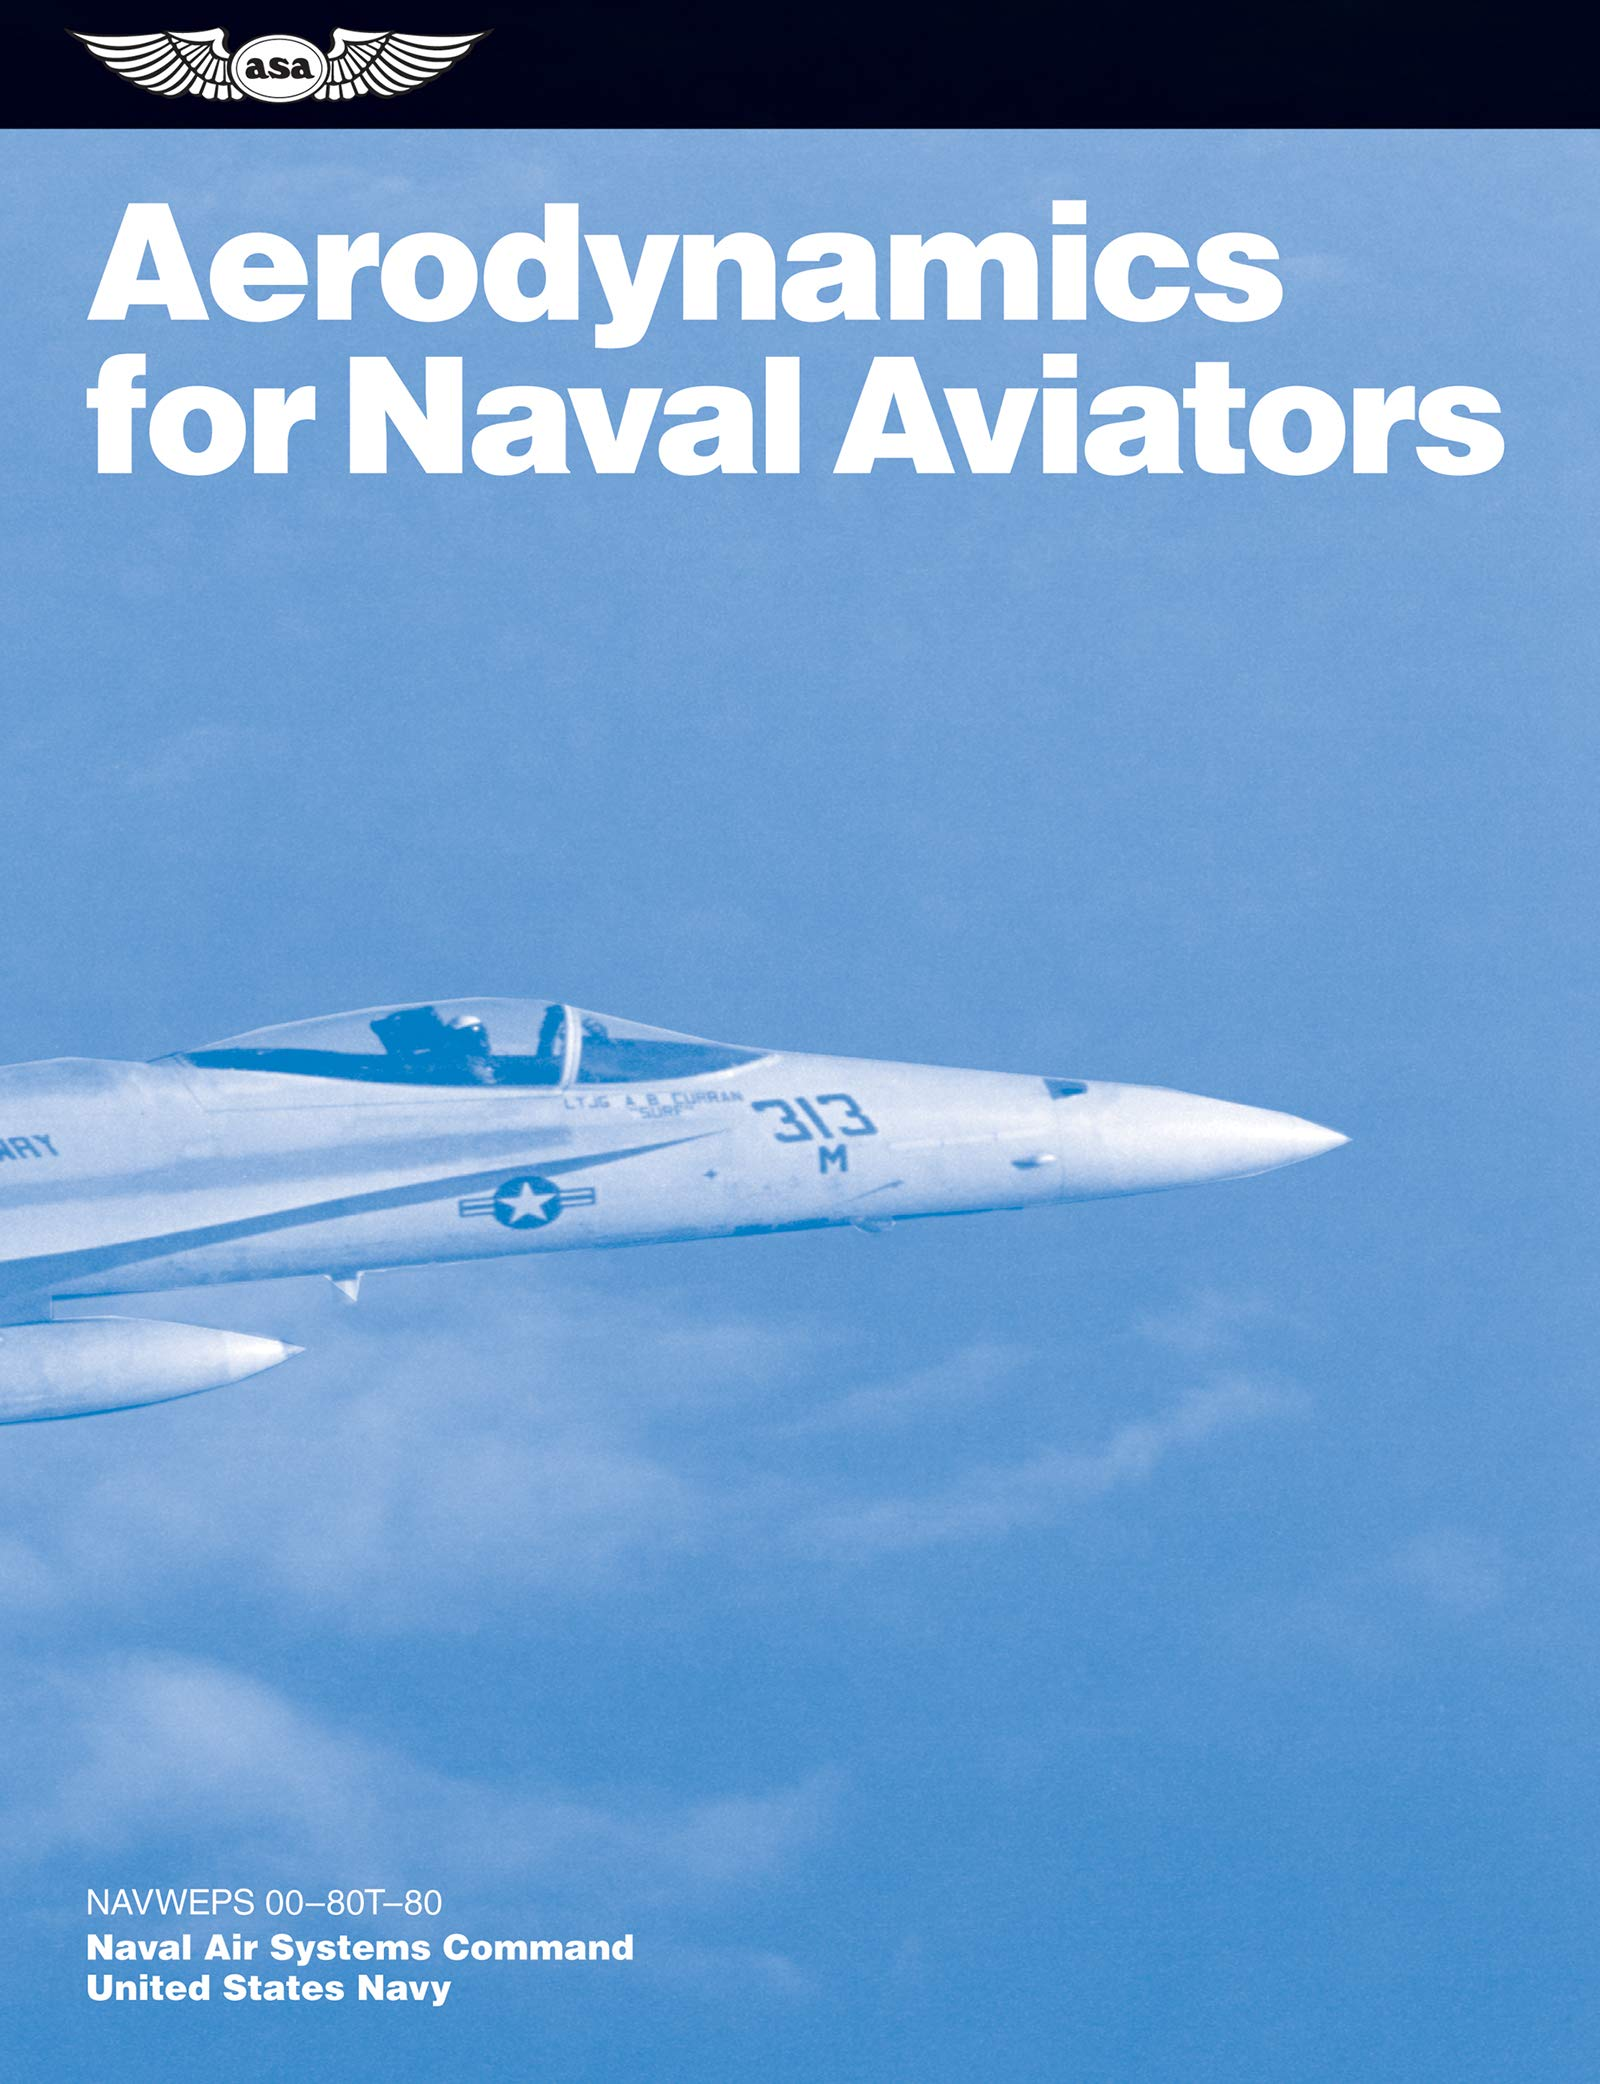 Buy Aerodynamics for Naval Aviators: NAVWEPS 00-80T-80 (FAA Handbooks) Book  Online at Low Prices in India | Aerodynamics for Naval Aviators: NAVWEPS ...